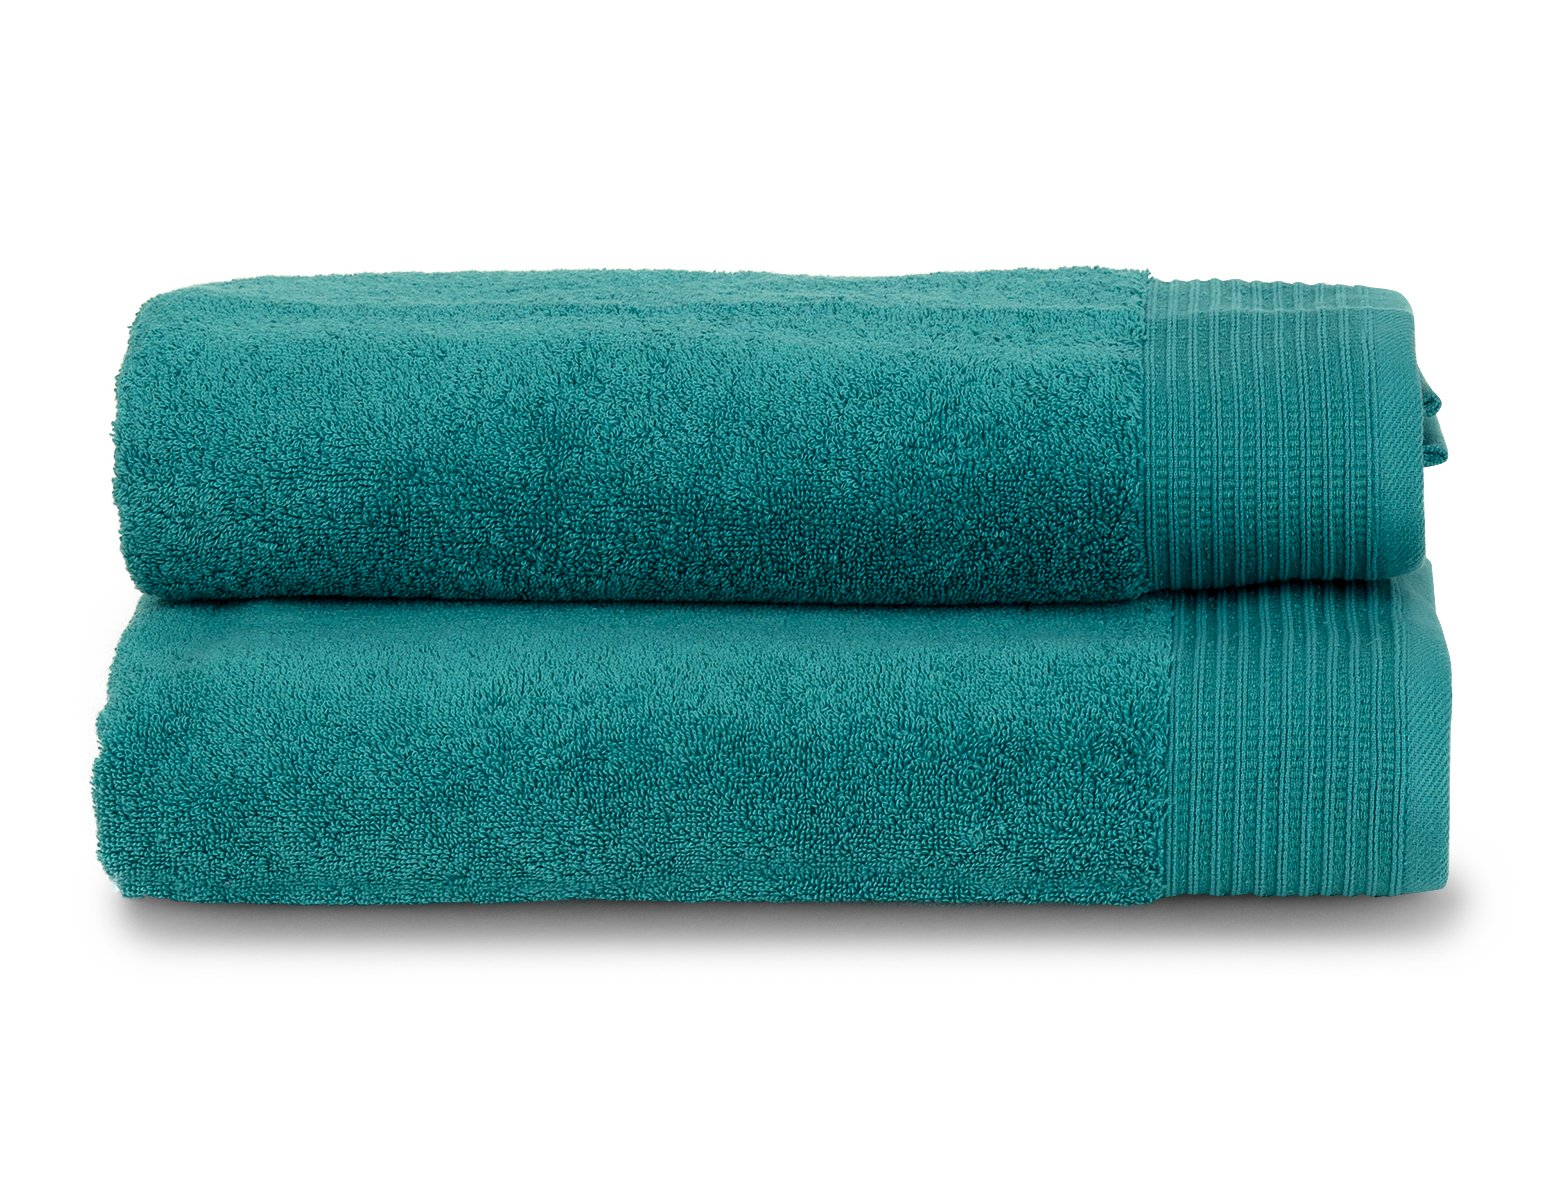 """TowelSelections Organic Collection Luxury Towels – 100% Organic Turkish Cotton, Made in Turkey, Lagoon, 2 Bath Towels - Melsimo Organic Towels. High Quality, Soft and Absorbent. Machine washable. Tumble dry low. Includes: 2 Bath Towels: 27""""x56"""" Made of 100% Organic Turkish Cotton for absorbency and softness. Weight 600 gram/sqm. - bathroom-linens, bathroom, bath-towels - 81u0twpCWdL -"""